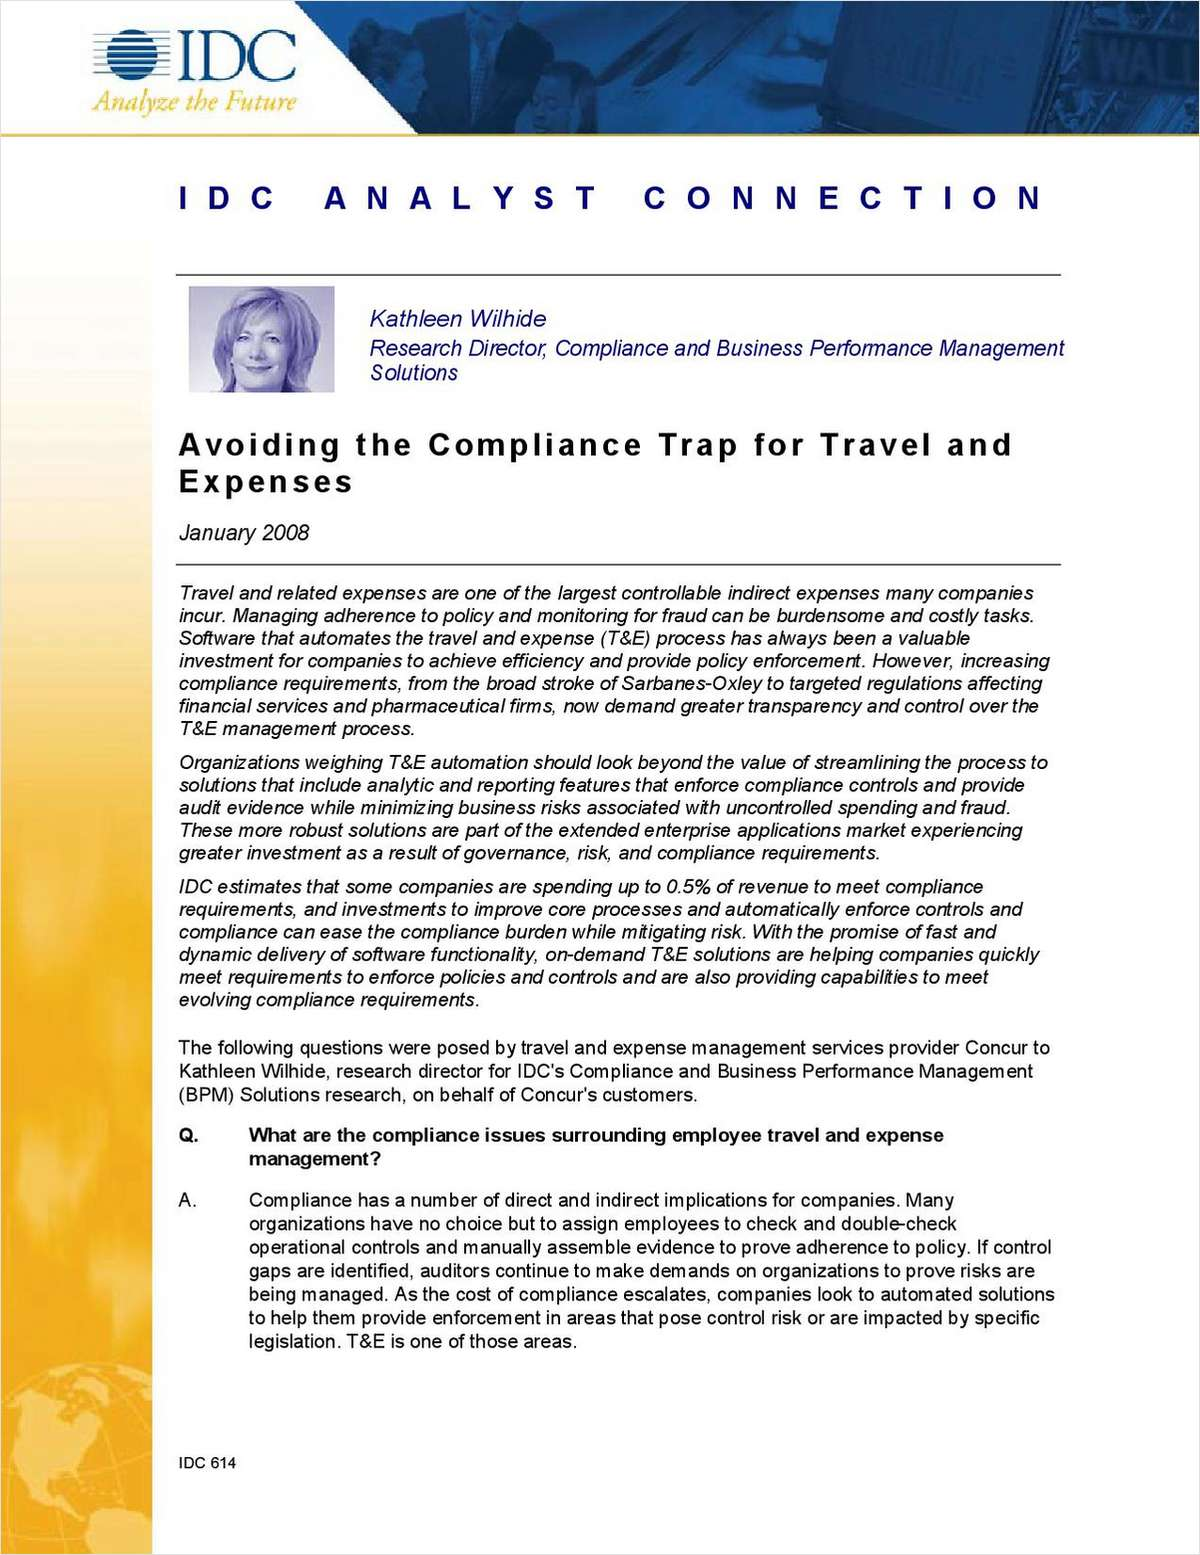 Avoiding the Compliance Trap for Travel and Expenses